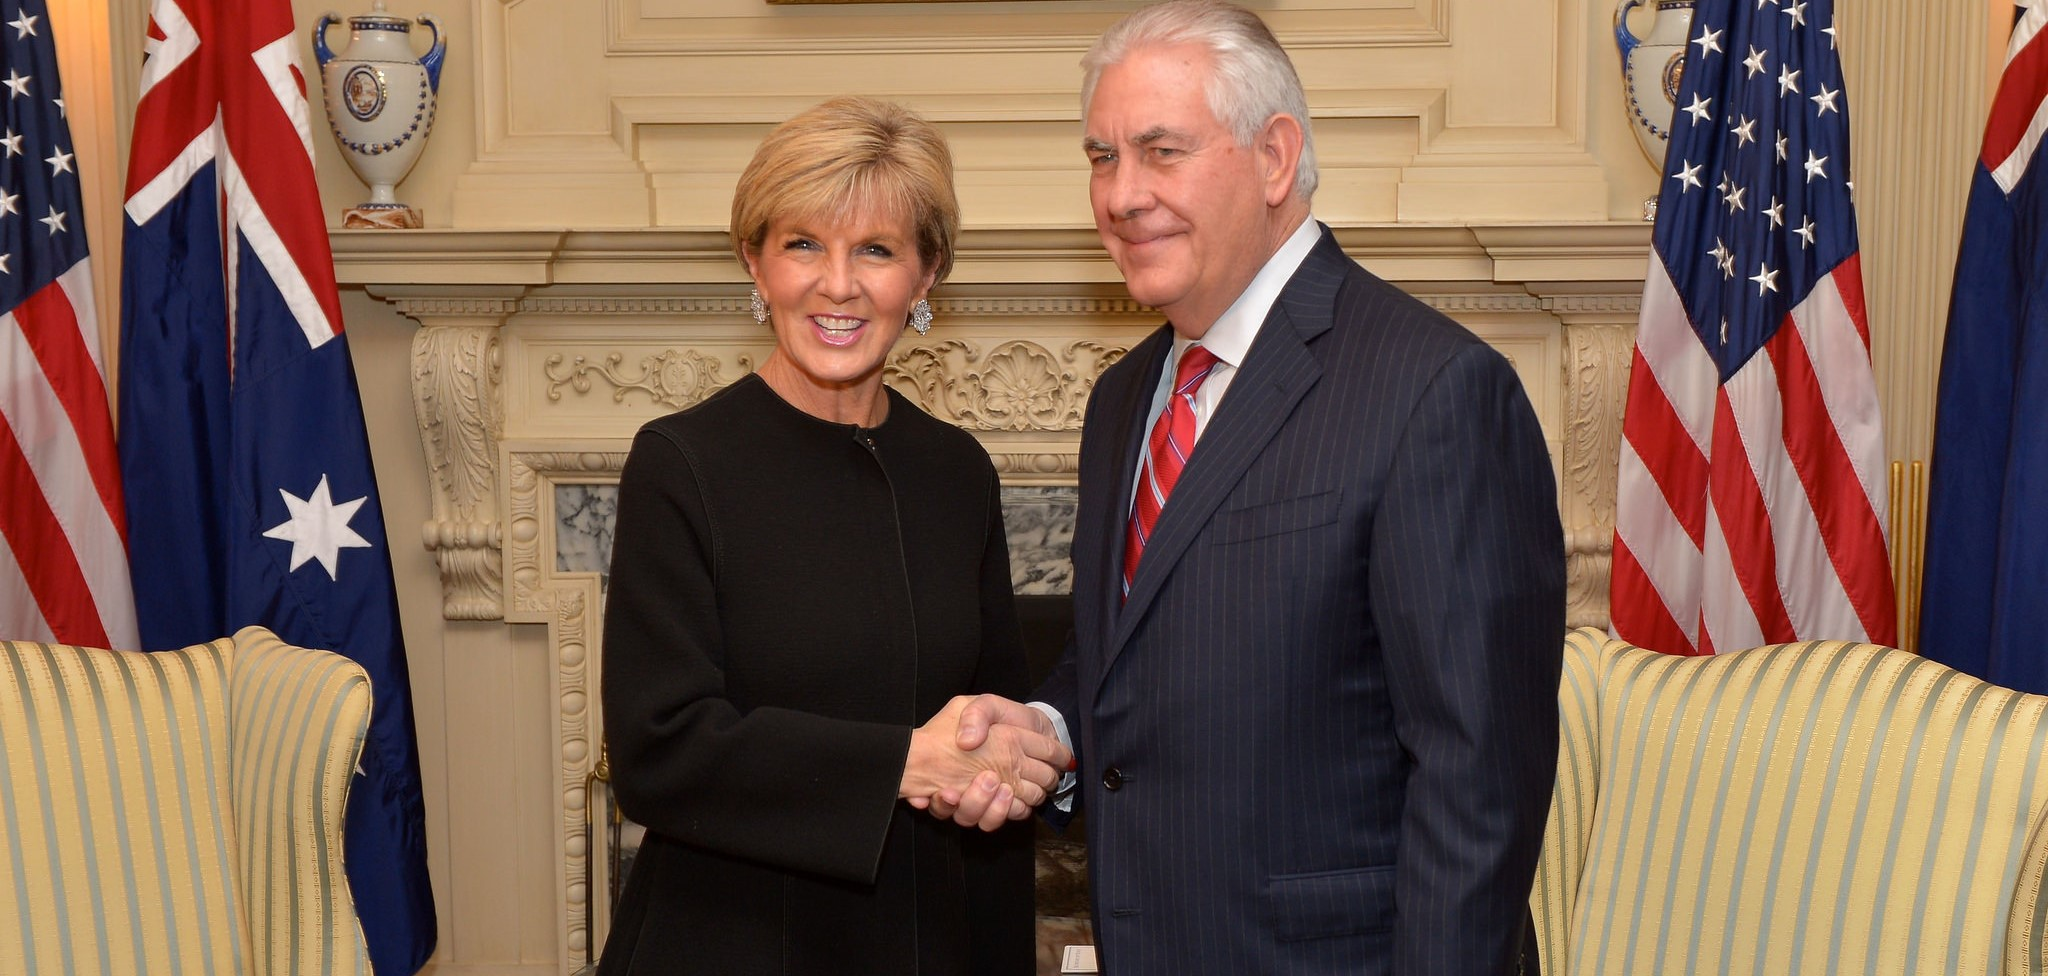 Australian Foreign Minister Julie Bishop meeting with US Secretary of State Rex Tillerson (Photo: Flickr/US Department of State)